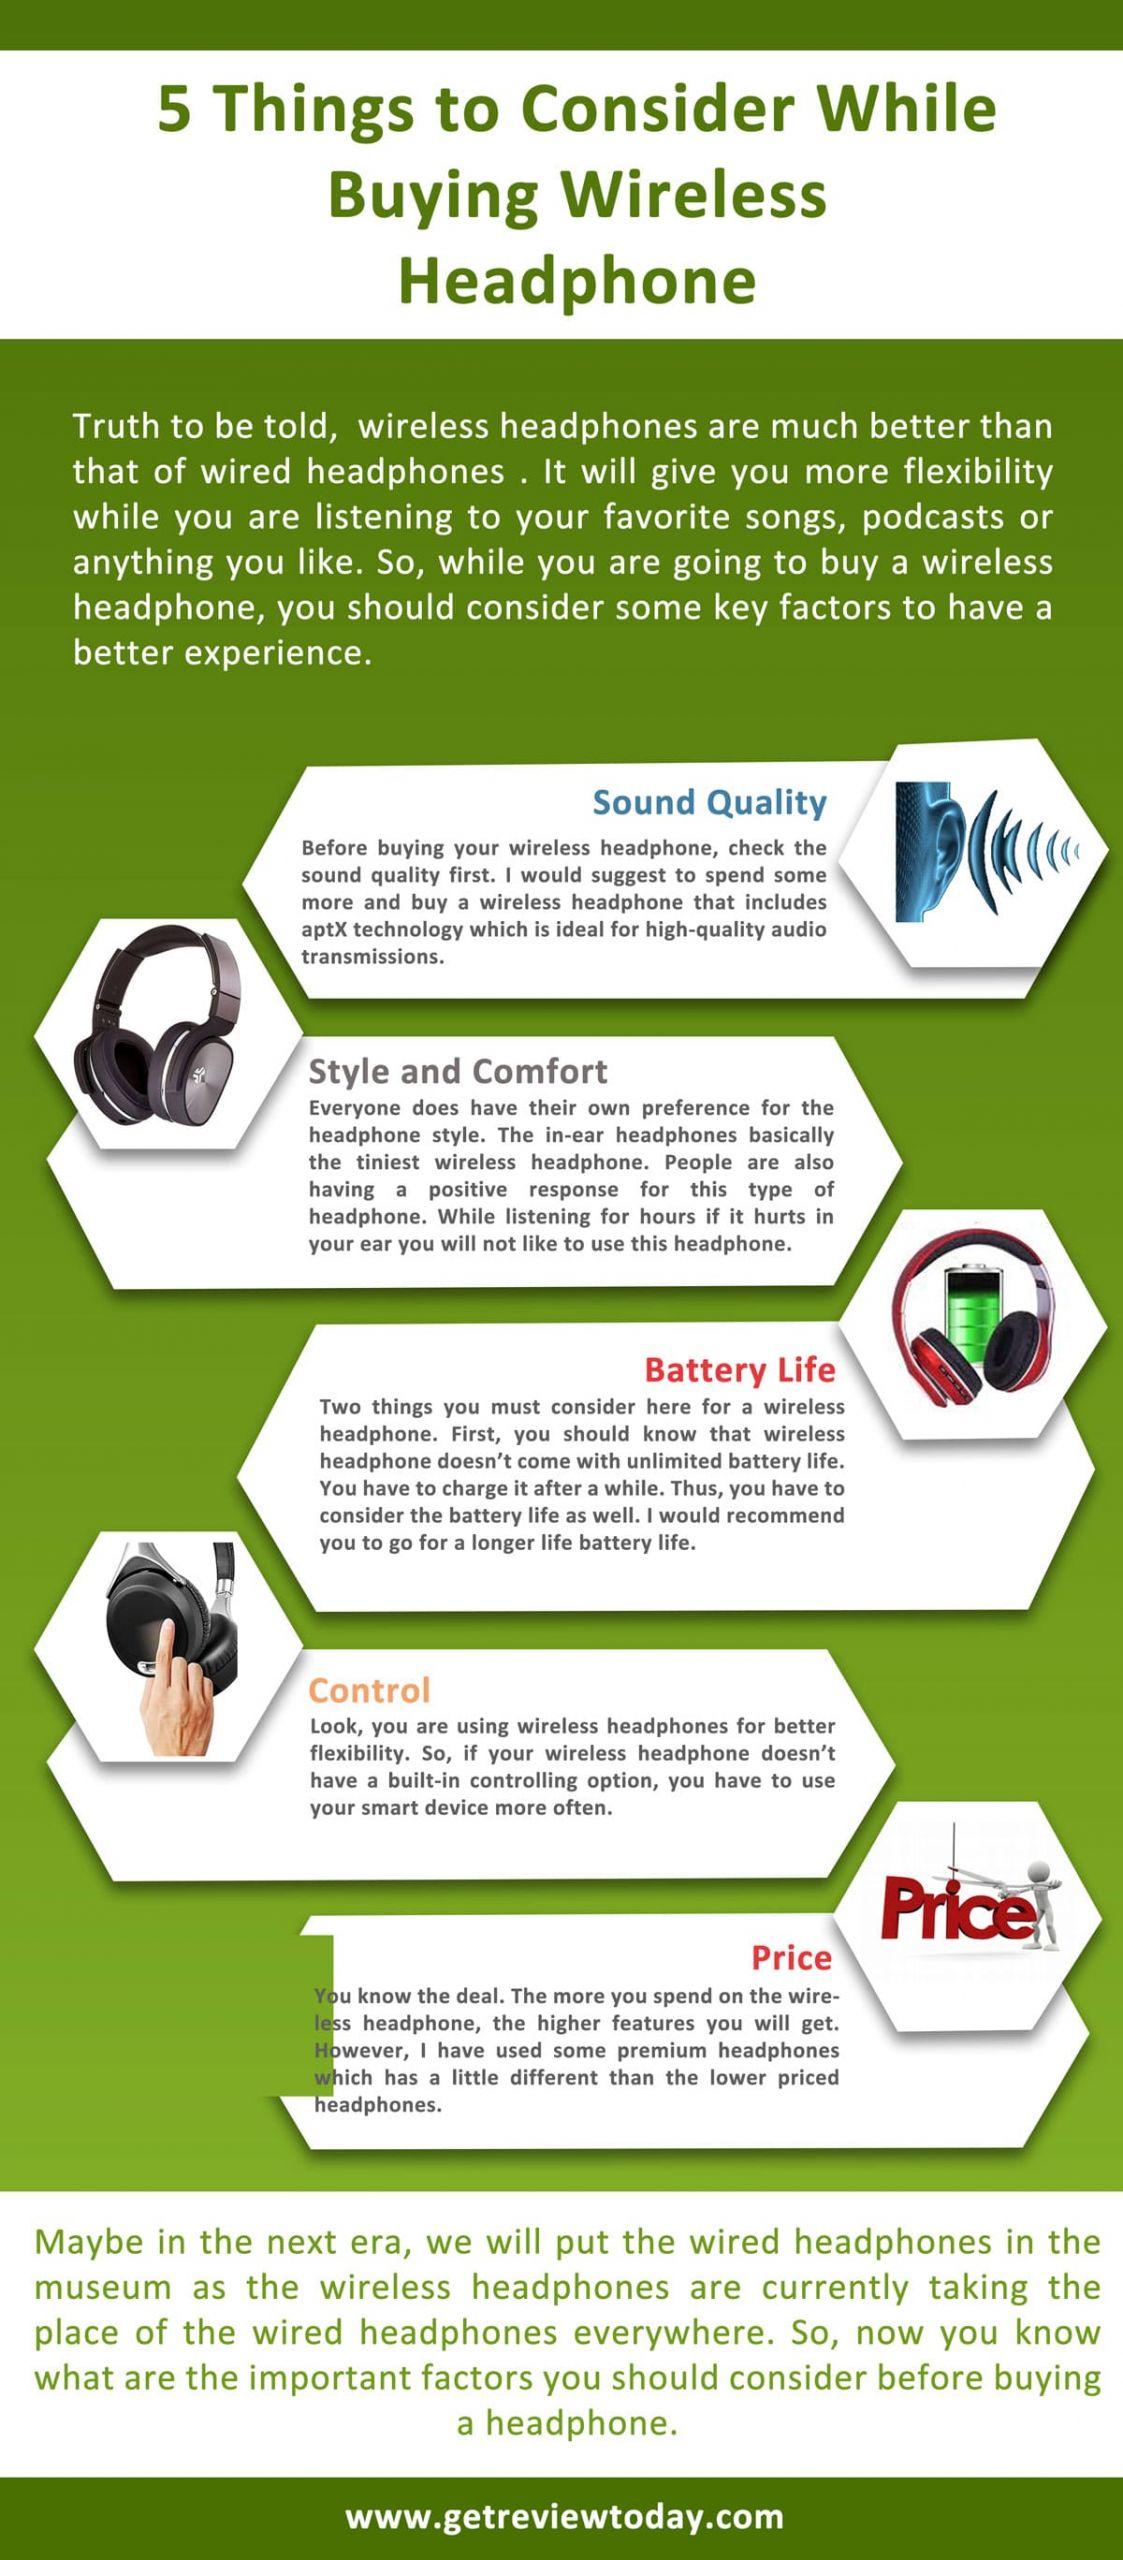 5 Things to Consider While Buying Wireless Headphone